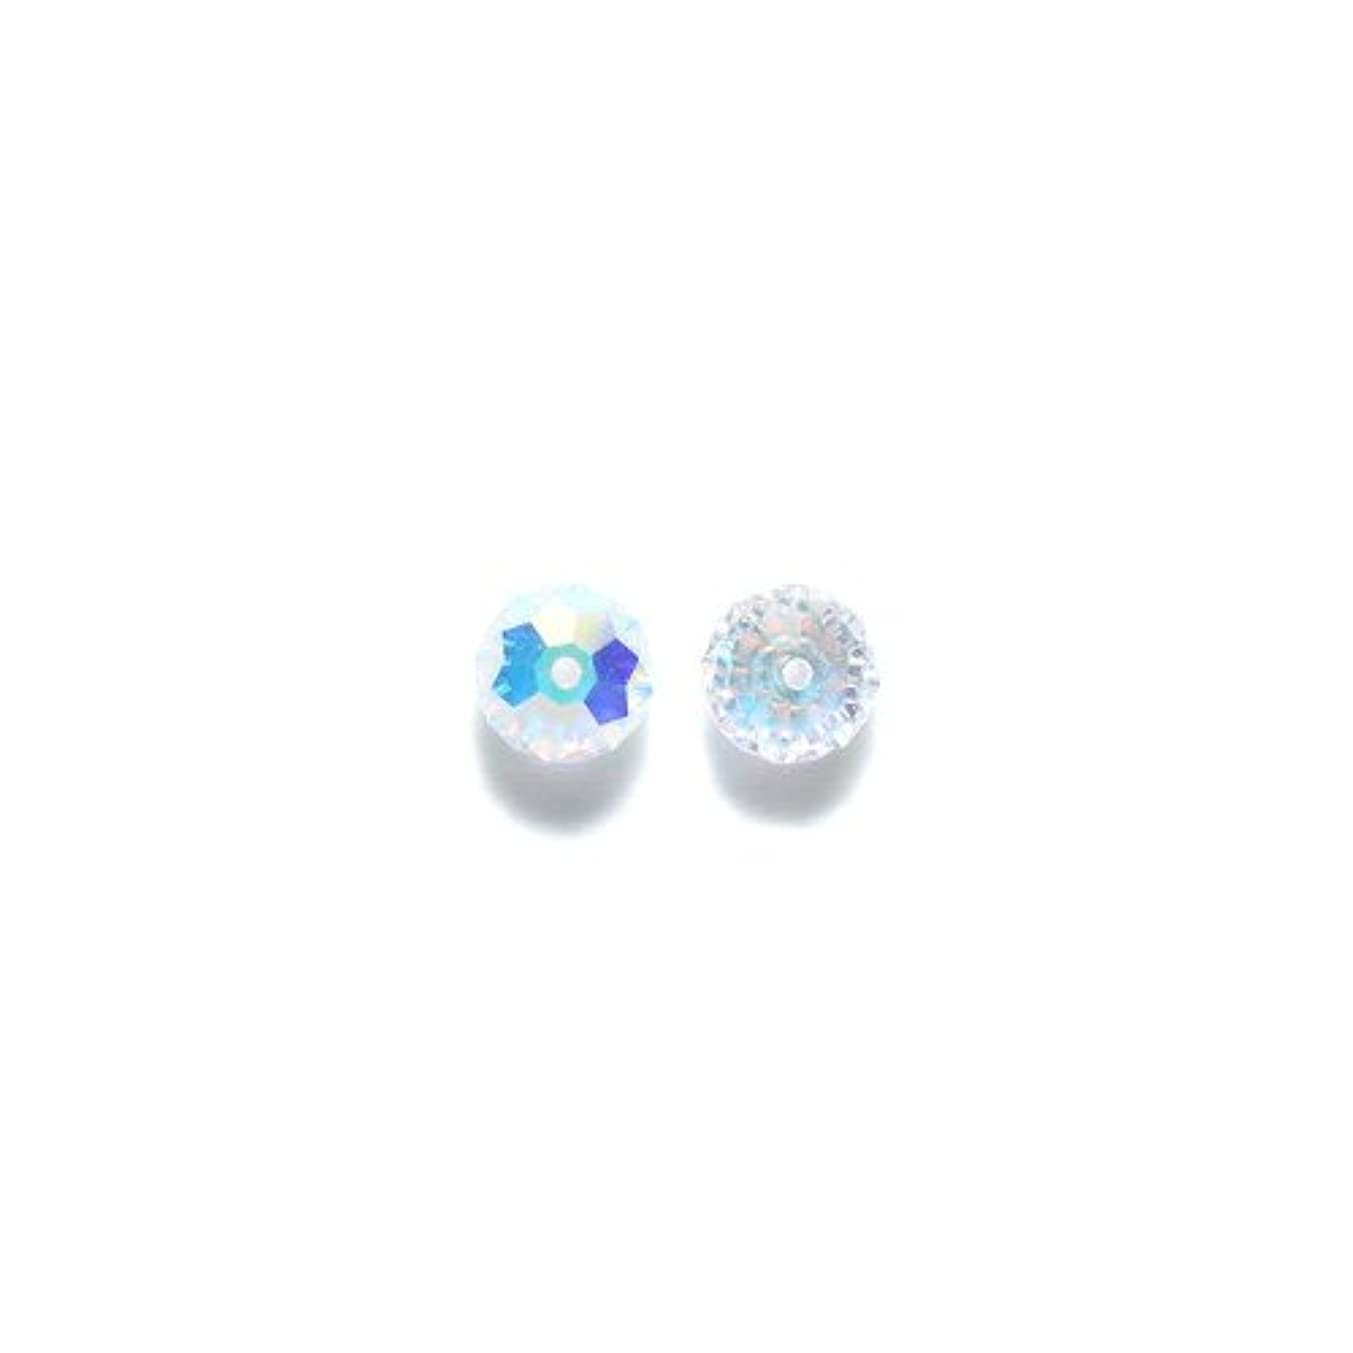 Swarovski 5040 Rondelle Beads, Aurora Borealis Finish, 6mm, Crystal, 6-pack